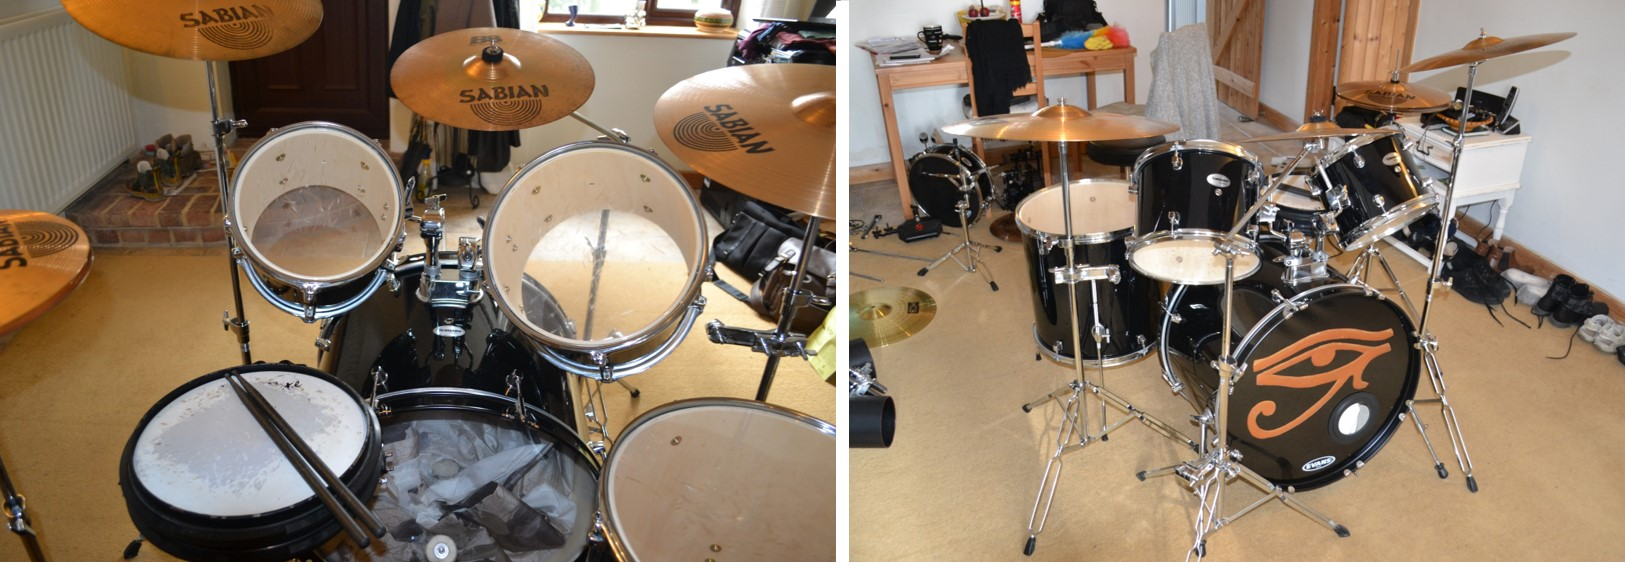 Anatomy of a Drum Kit: A Tour of My Drums - Liam Smith\'s Blog